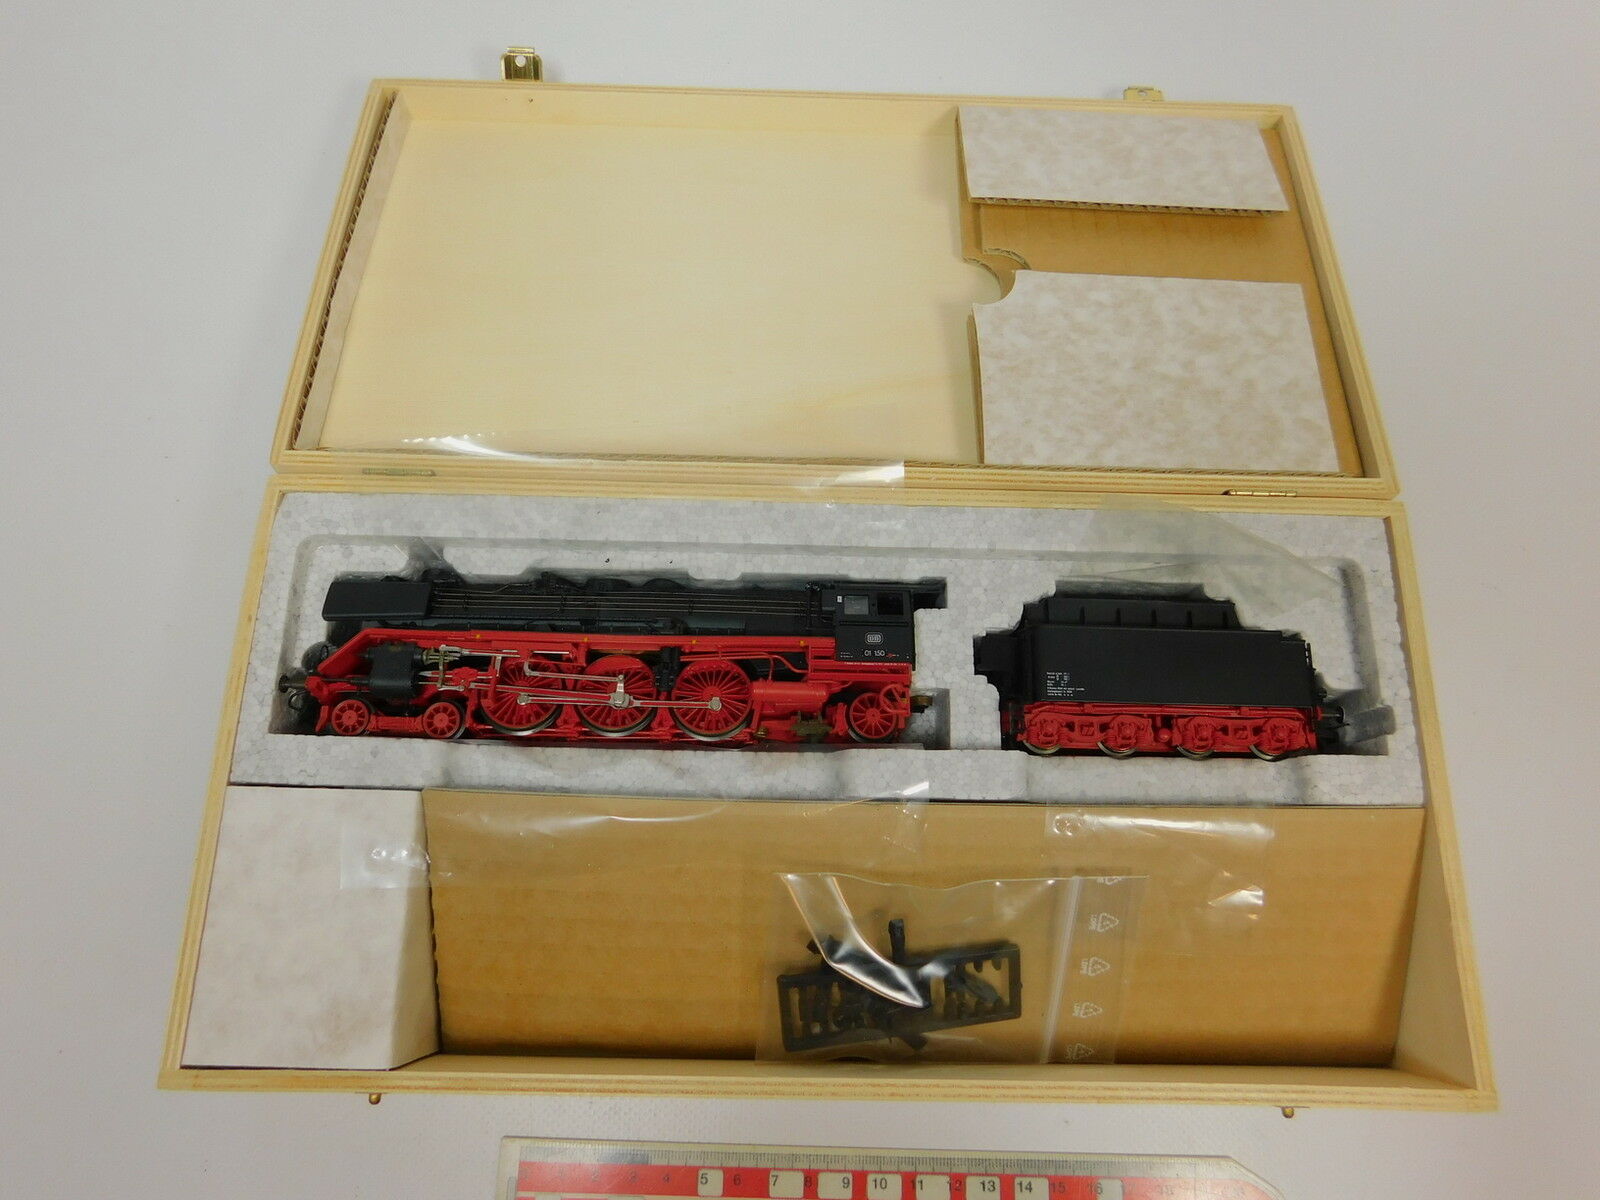 Aj854-2  ROCO MUSEUM EDITION H0 DC 43238 Steam Locomotive Locomotive with Tender